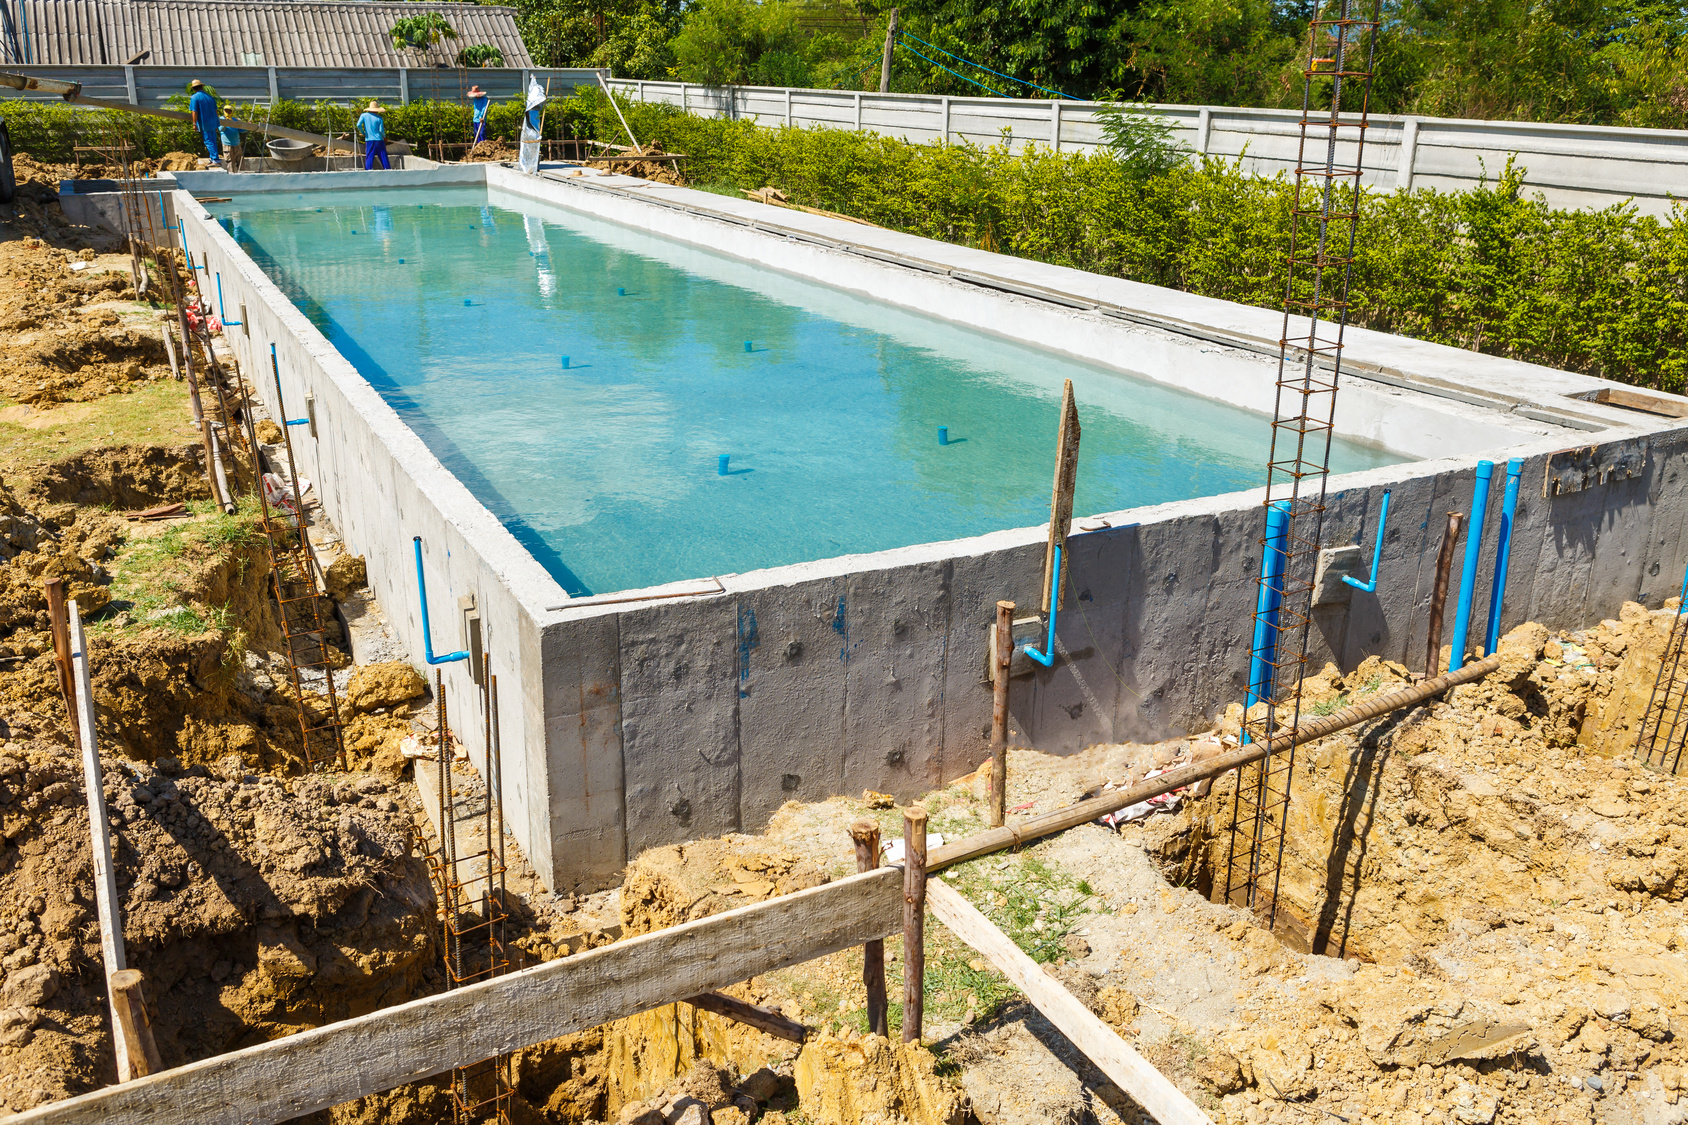 Construire une piscine b ton traditionnelle en kit for Piscine en beton projete